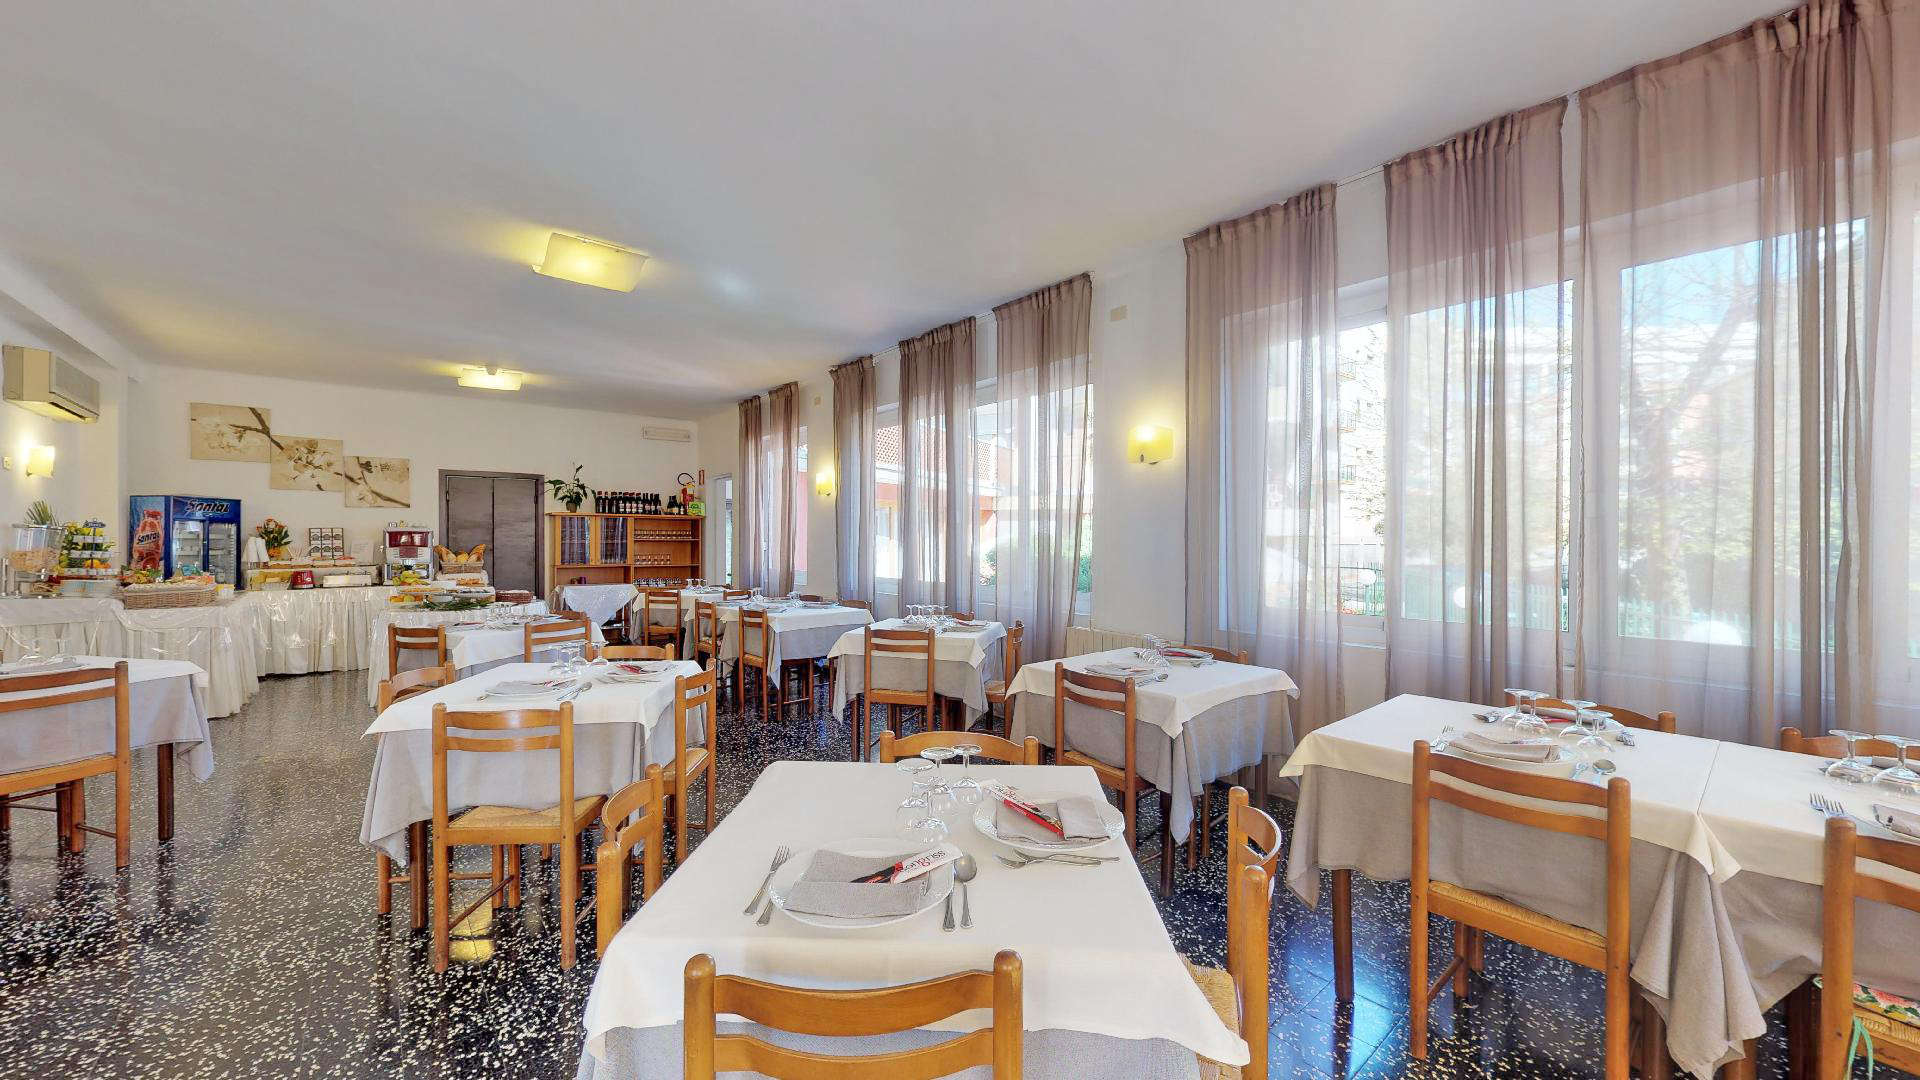 Hotel-Arcobaleno-Celle-06172019_103735